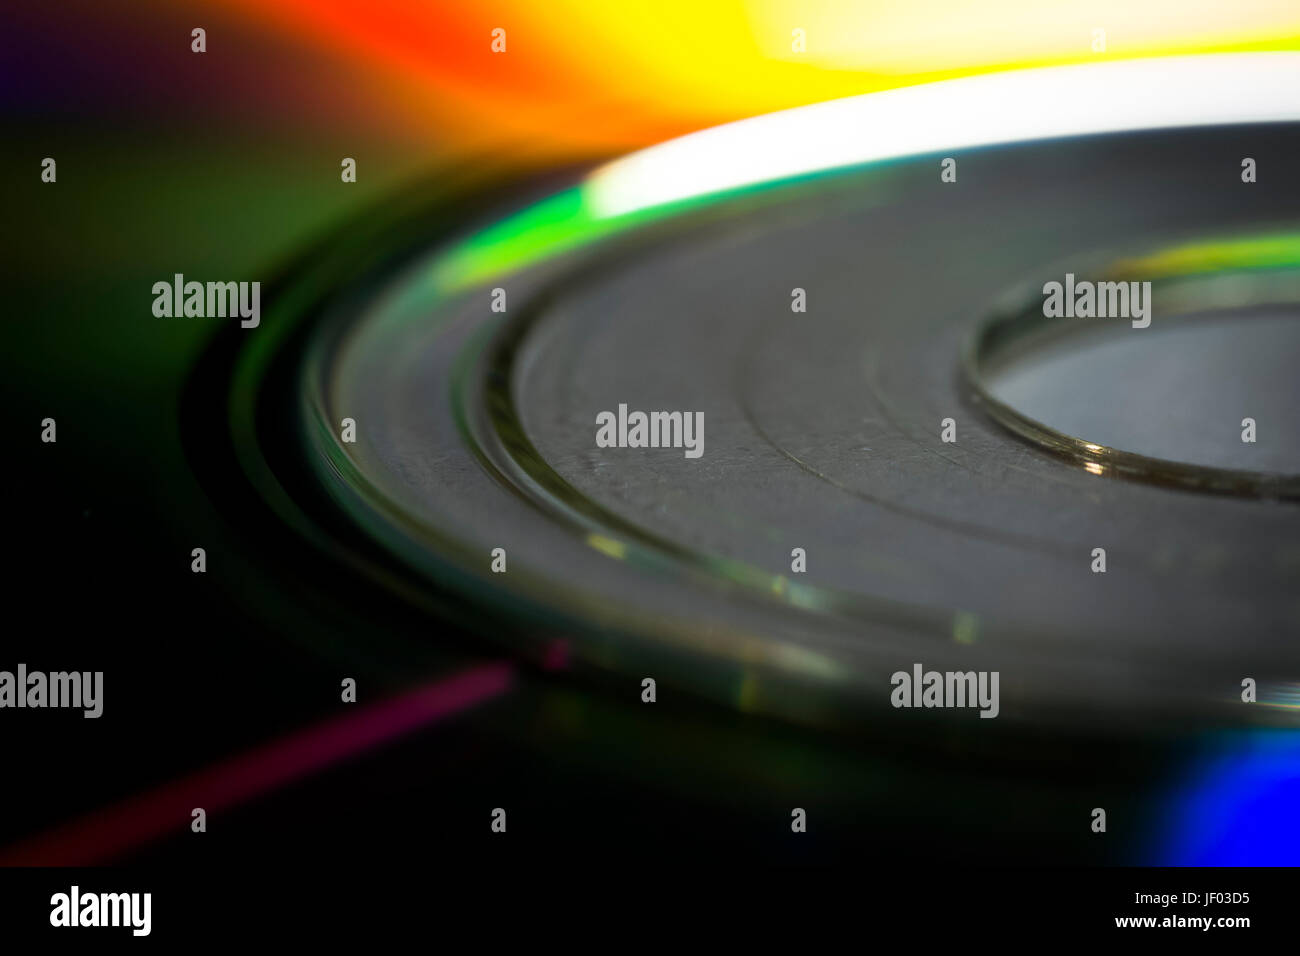 The surface of the CD close-up reflects the spectral colors. - Stock Image